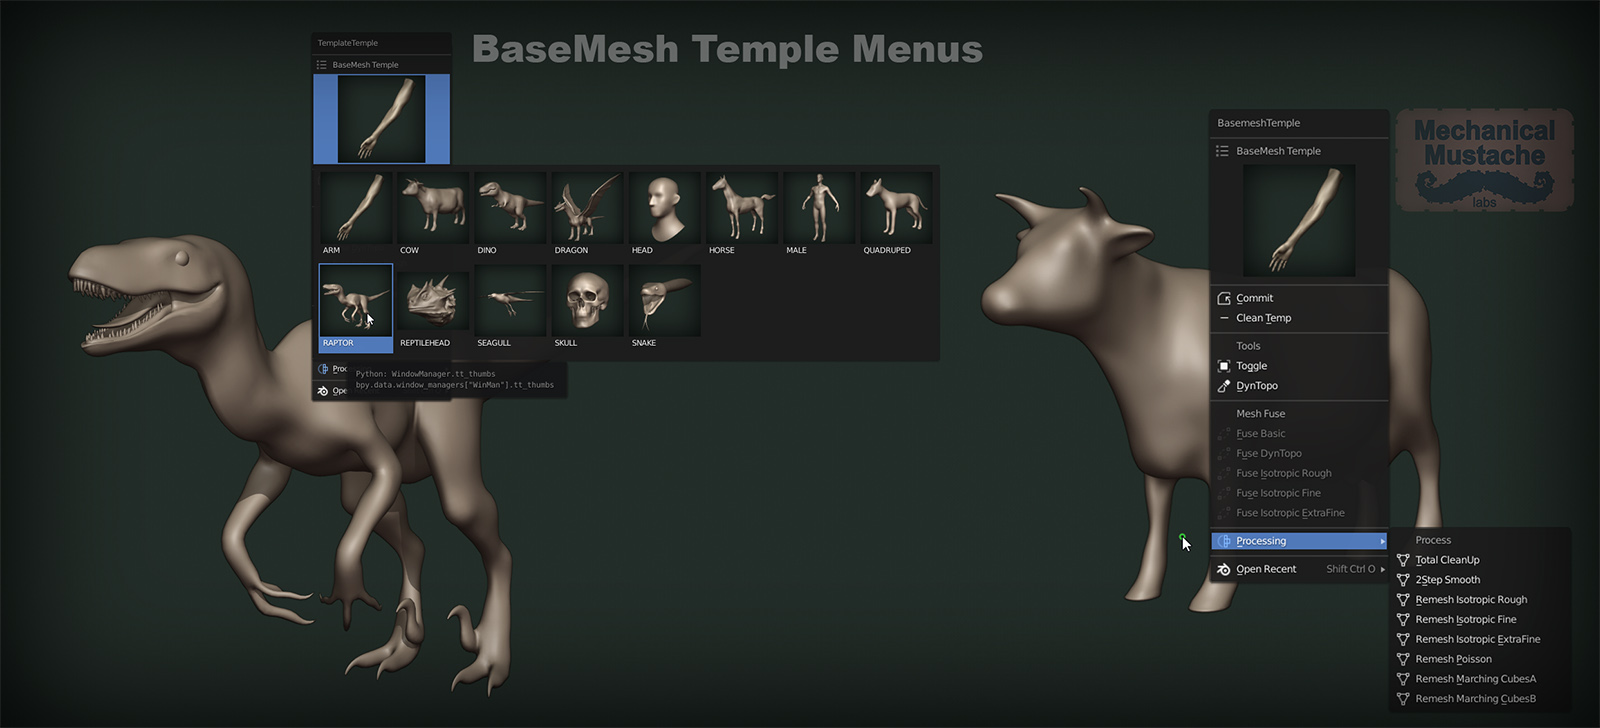 BaseMesh Temple: An awesome way of sculpting in Blender